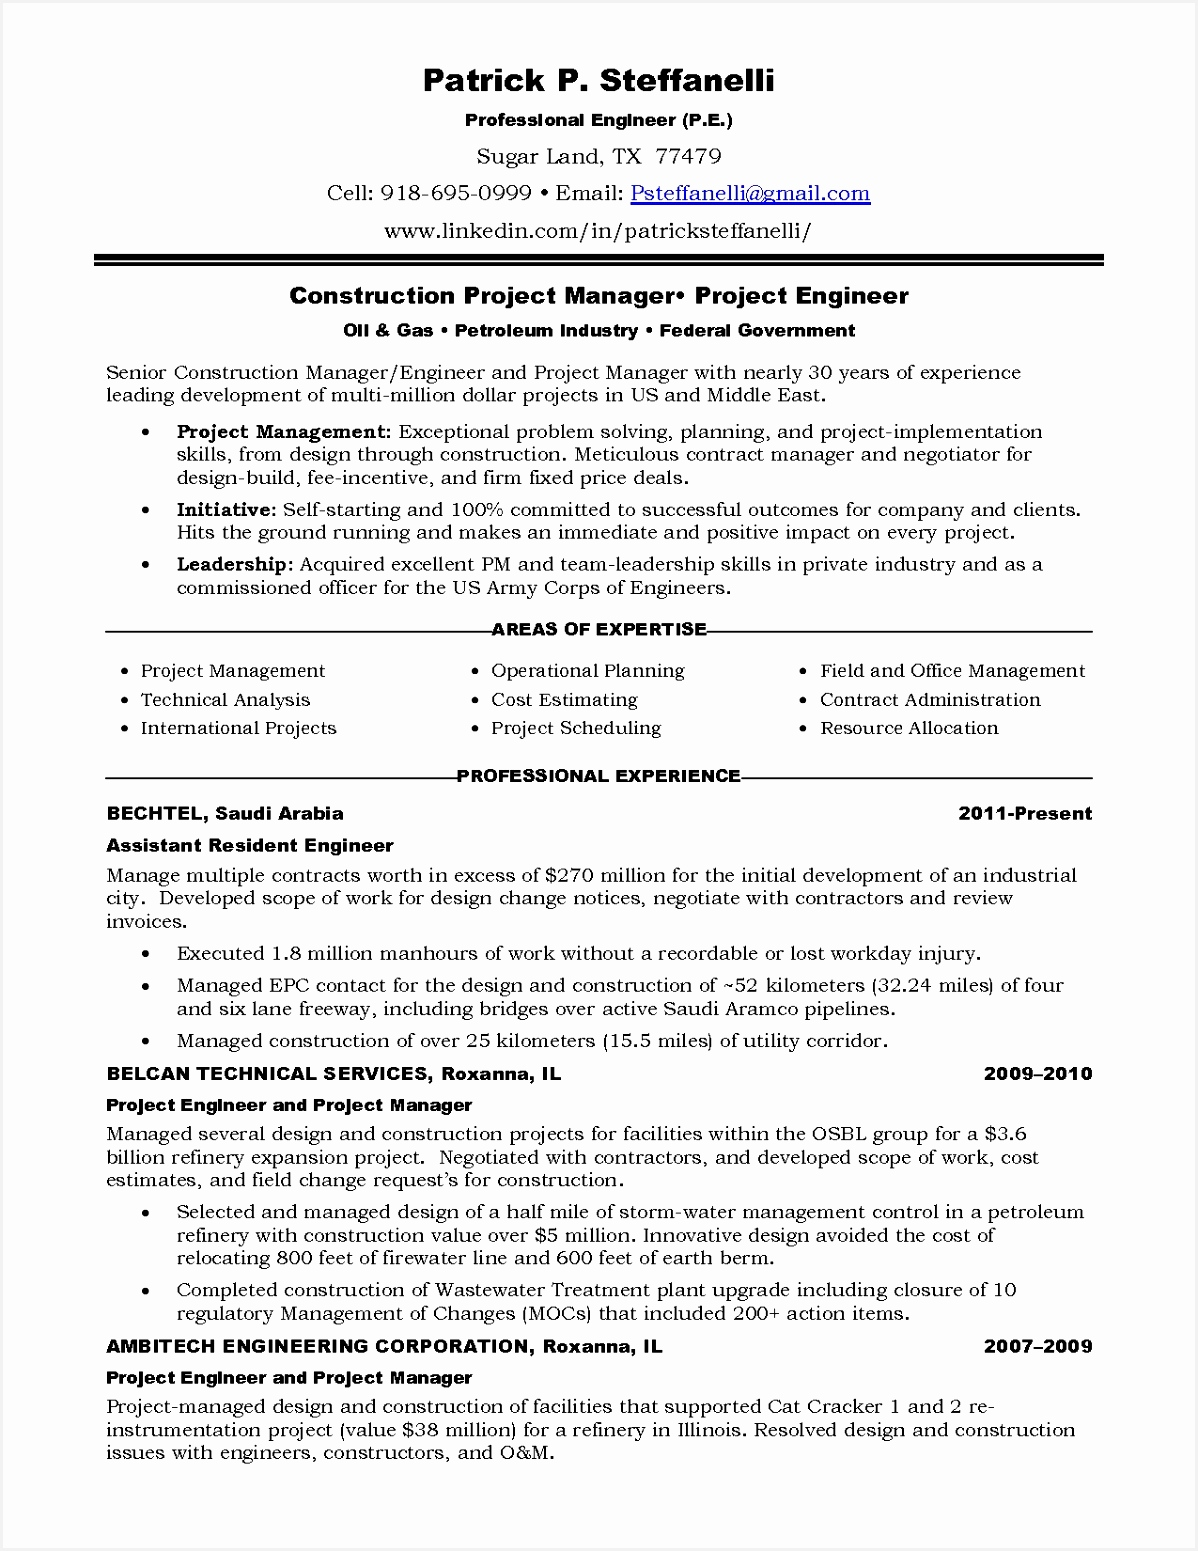 Electrical Engineering Resume Template Ptqow Unique Unique Electrical Engineering Skills Resume Resume Ideas Of 7 Electrical Engineering Resume Template